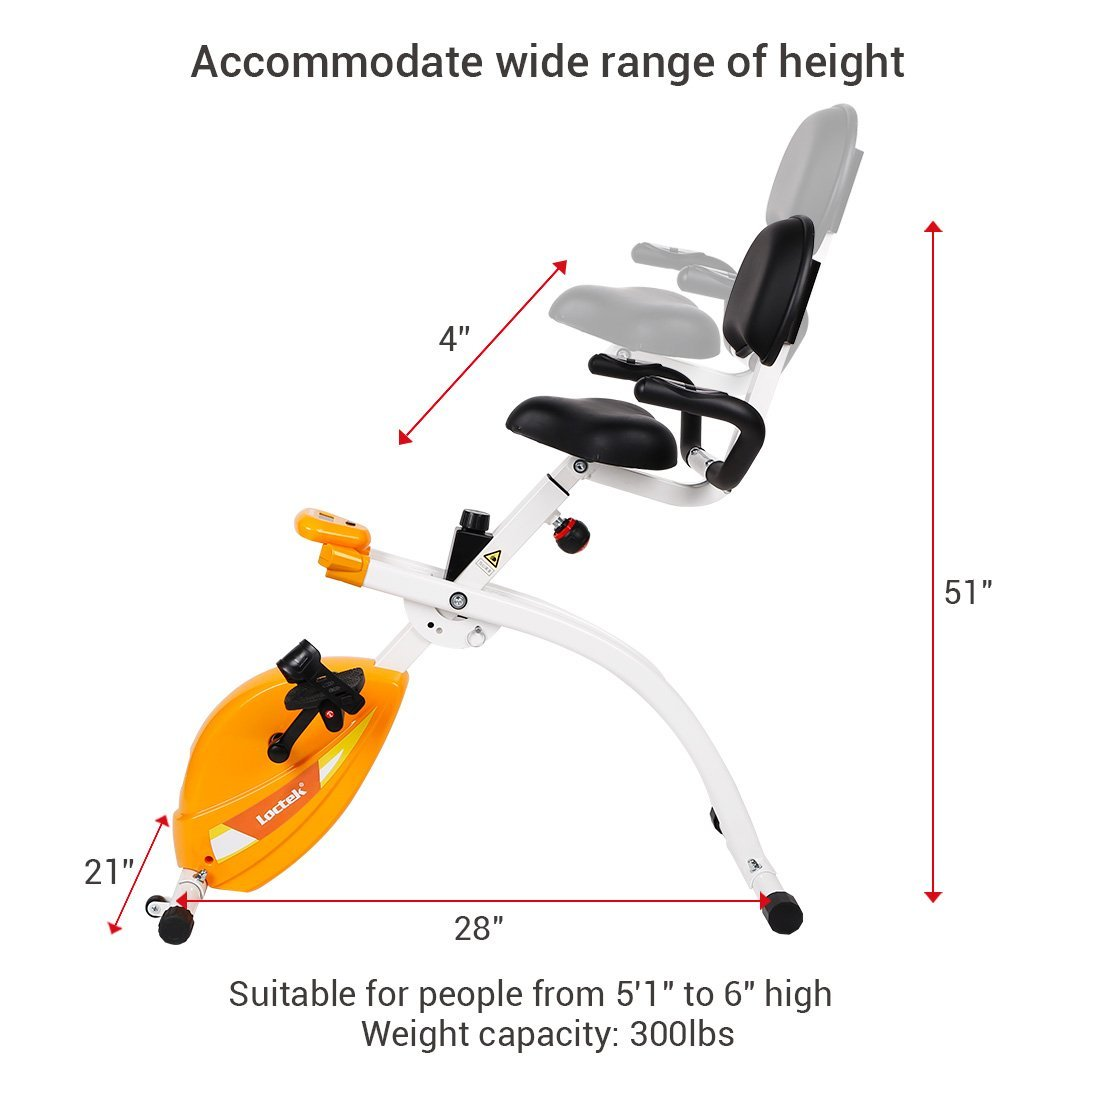 Stupendous Loctek U1 Under Desk Bike Upright Stationary Foldable Exercise Bike Download Free Architecture Designs Intelgarnamadebymaigaardcom